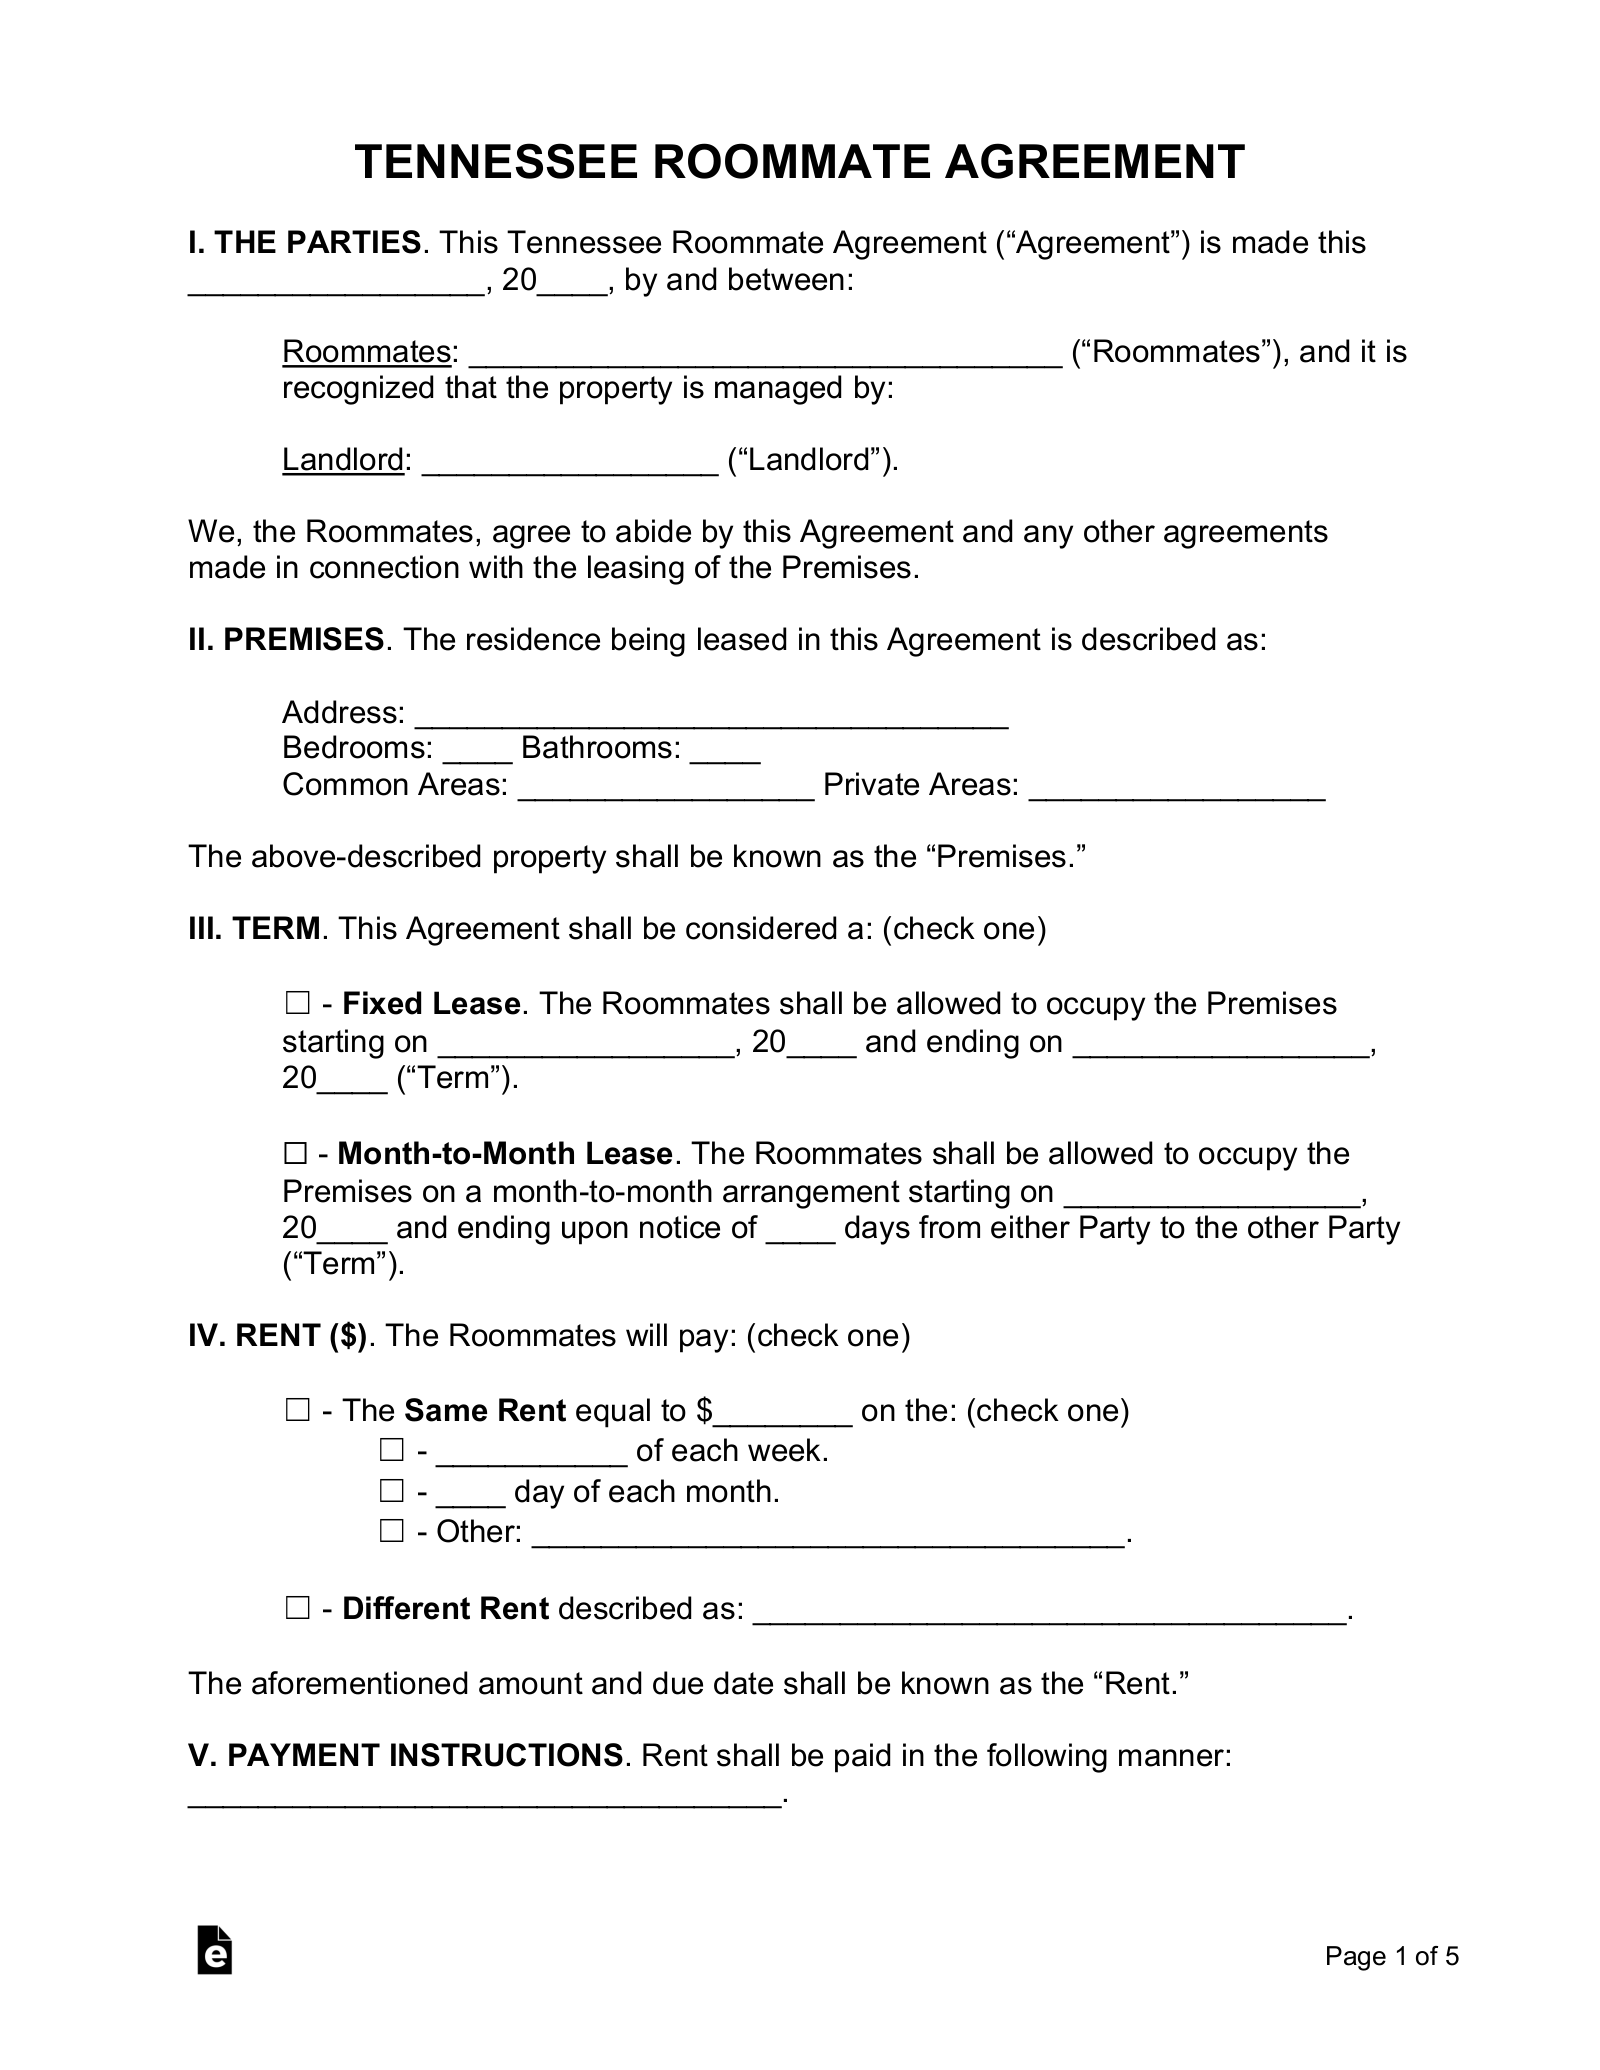 Free Tennessee Roommate Agreement Form Pdf Word Eforms